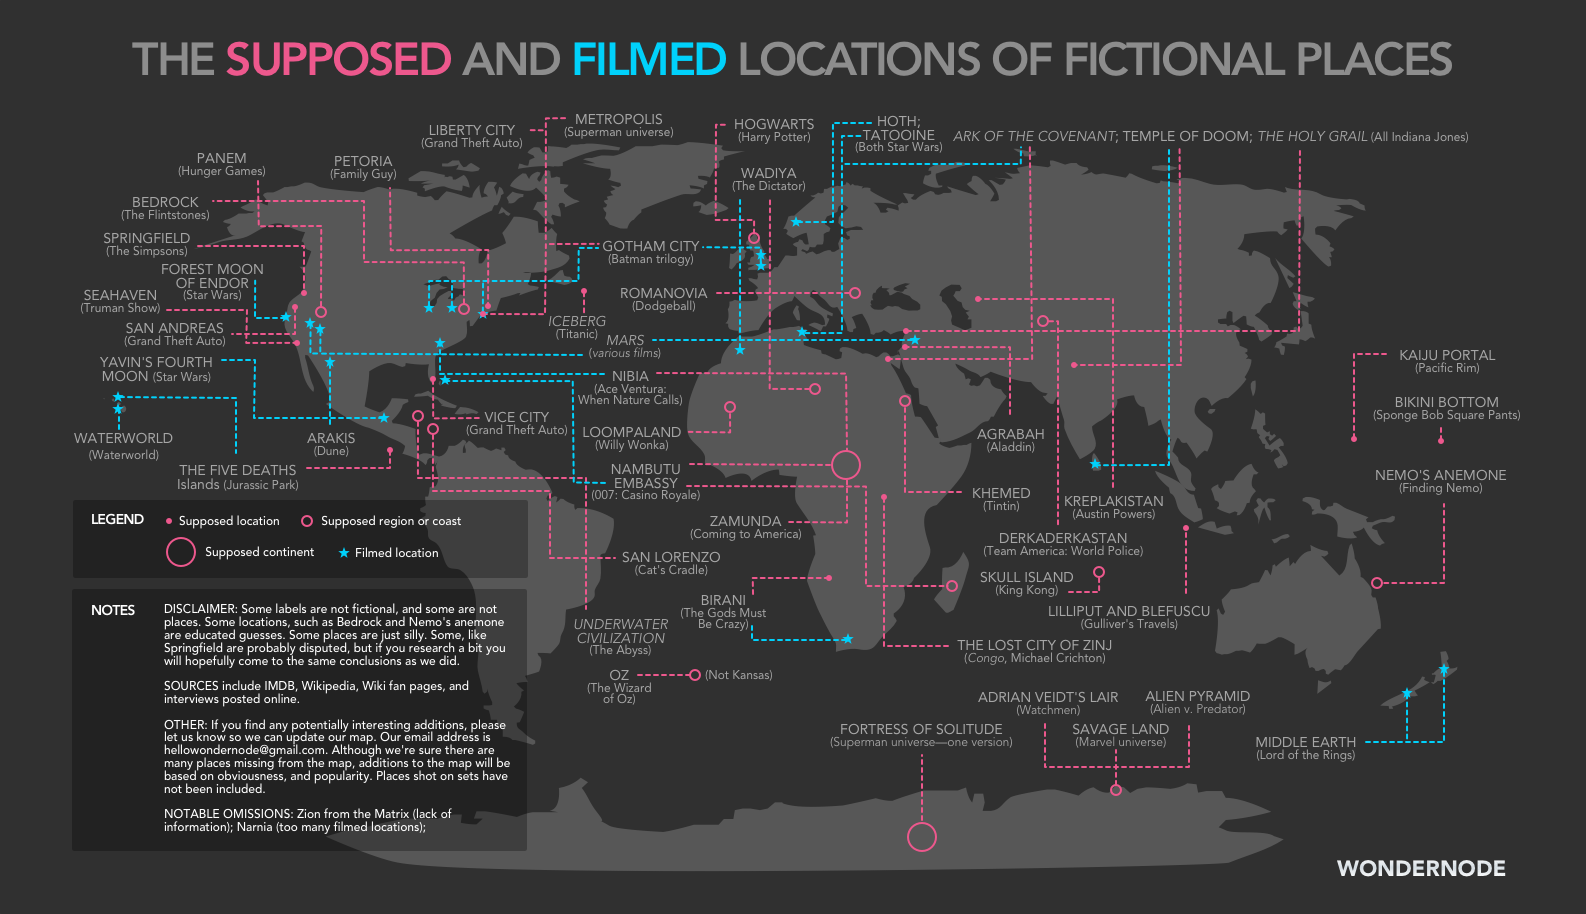 The Supposed and Filmed Locations of Fictional Places